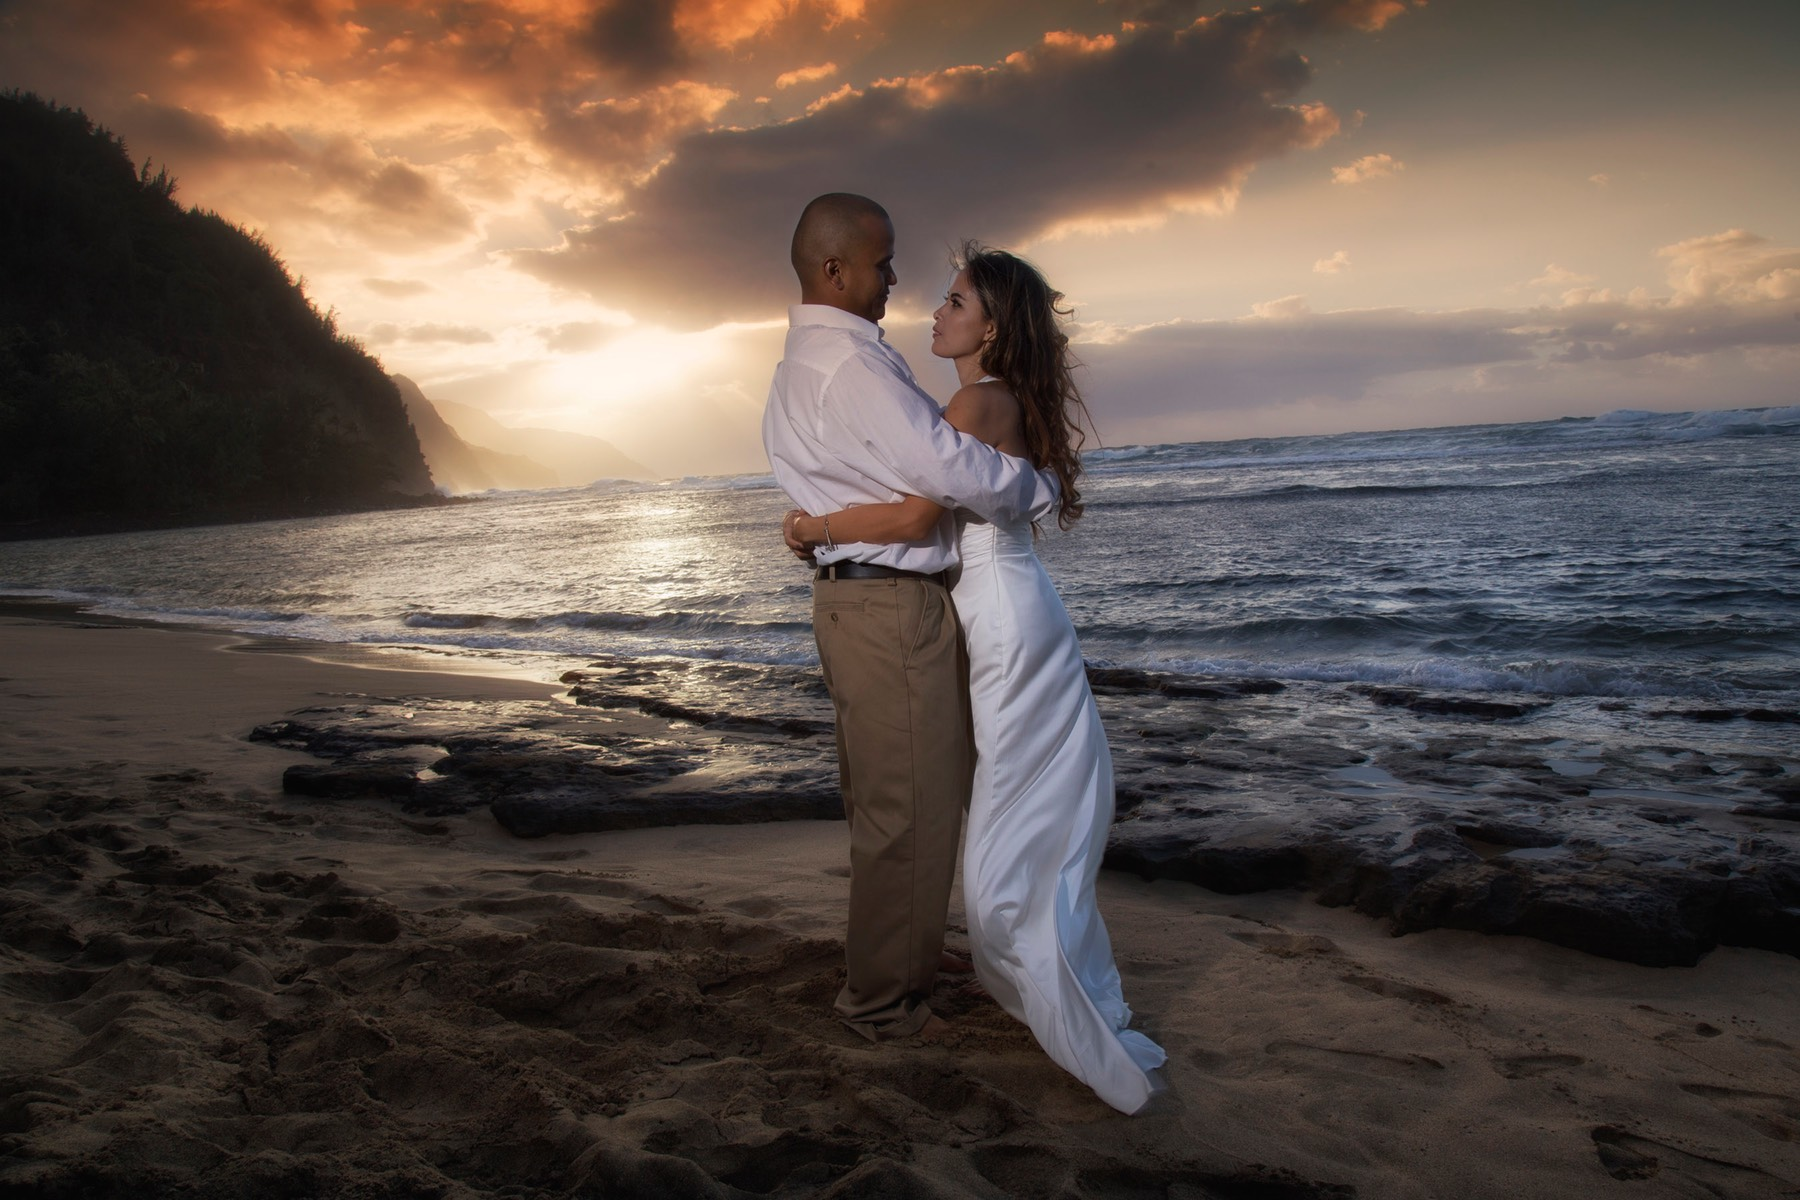 Kauai wedding videographer and photographer Difraser _MG_2266s, sunset shot at Ke'e beach Kauai, Canon 24-105 and 2 speed lights.